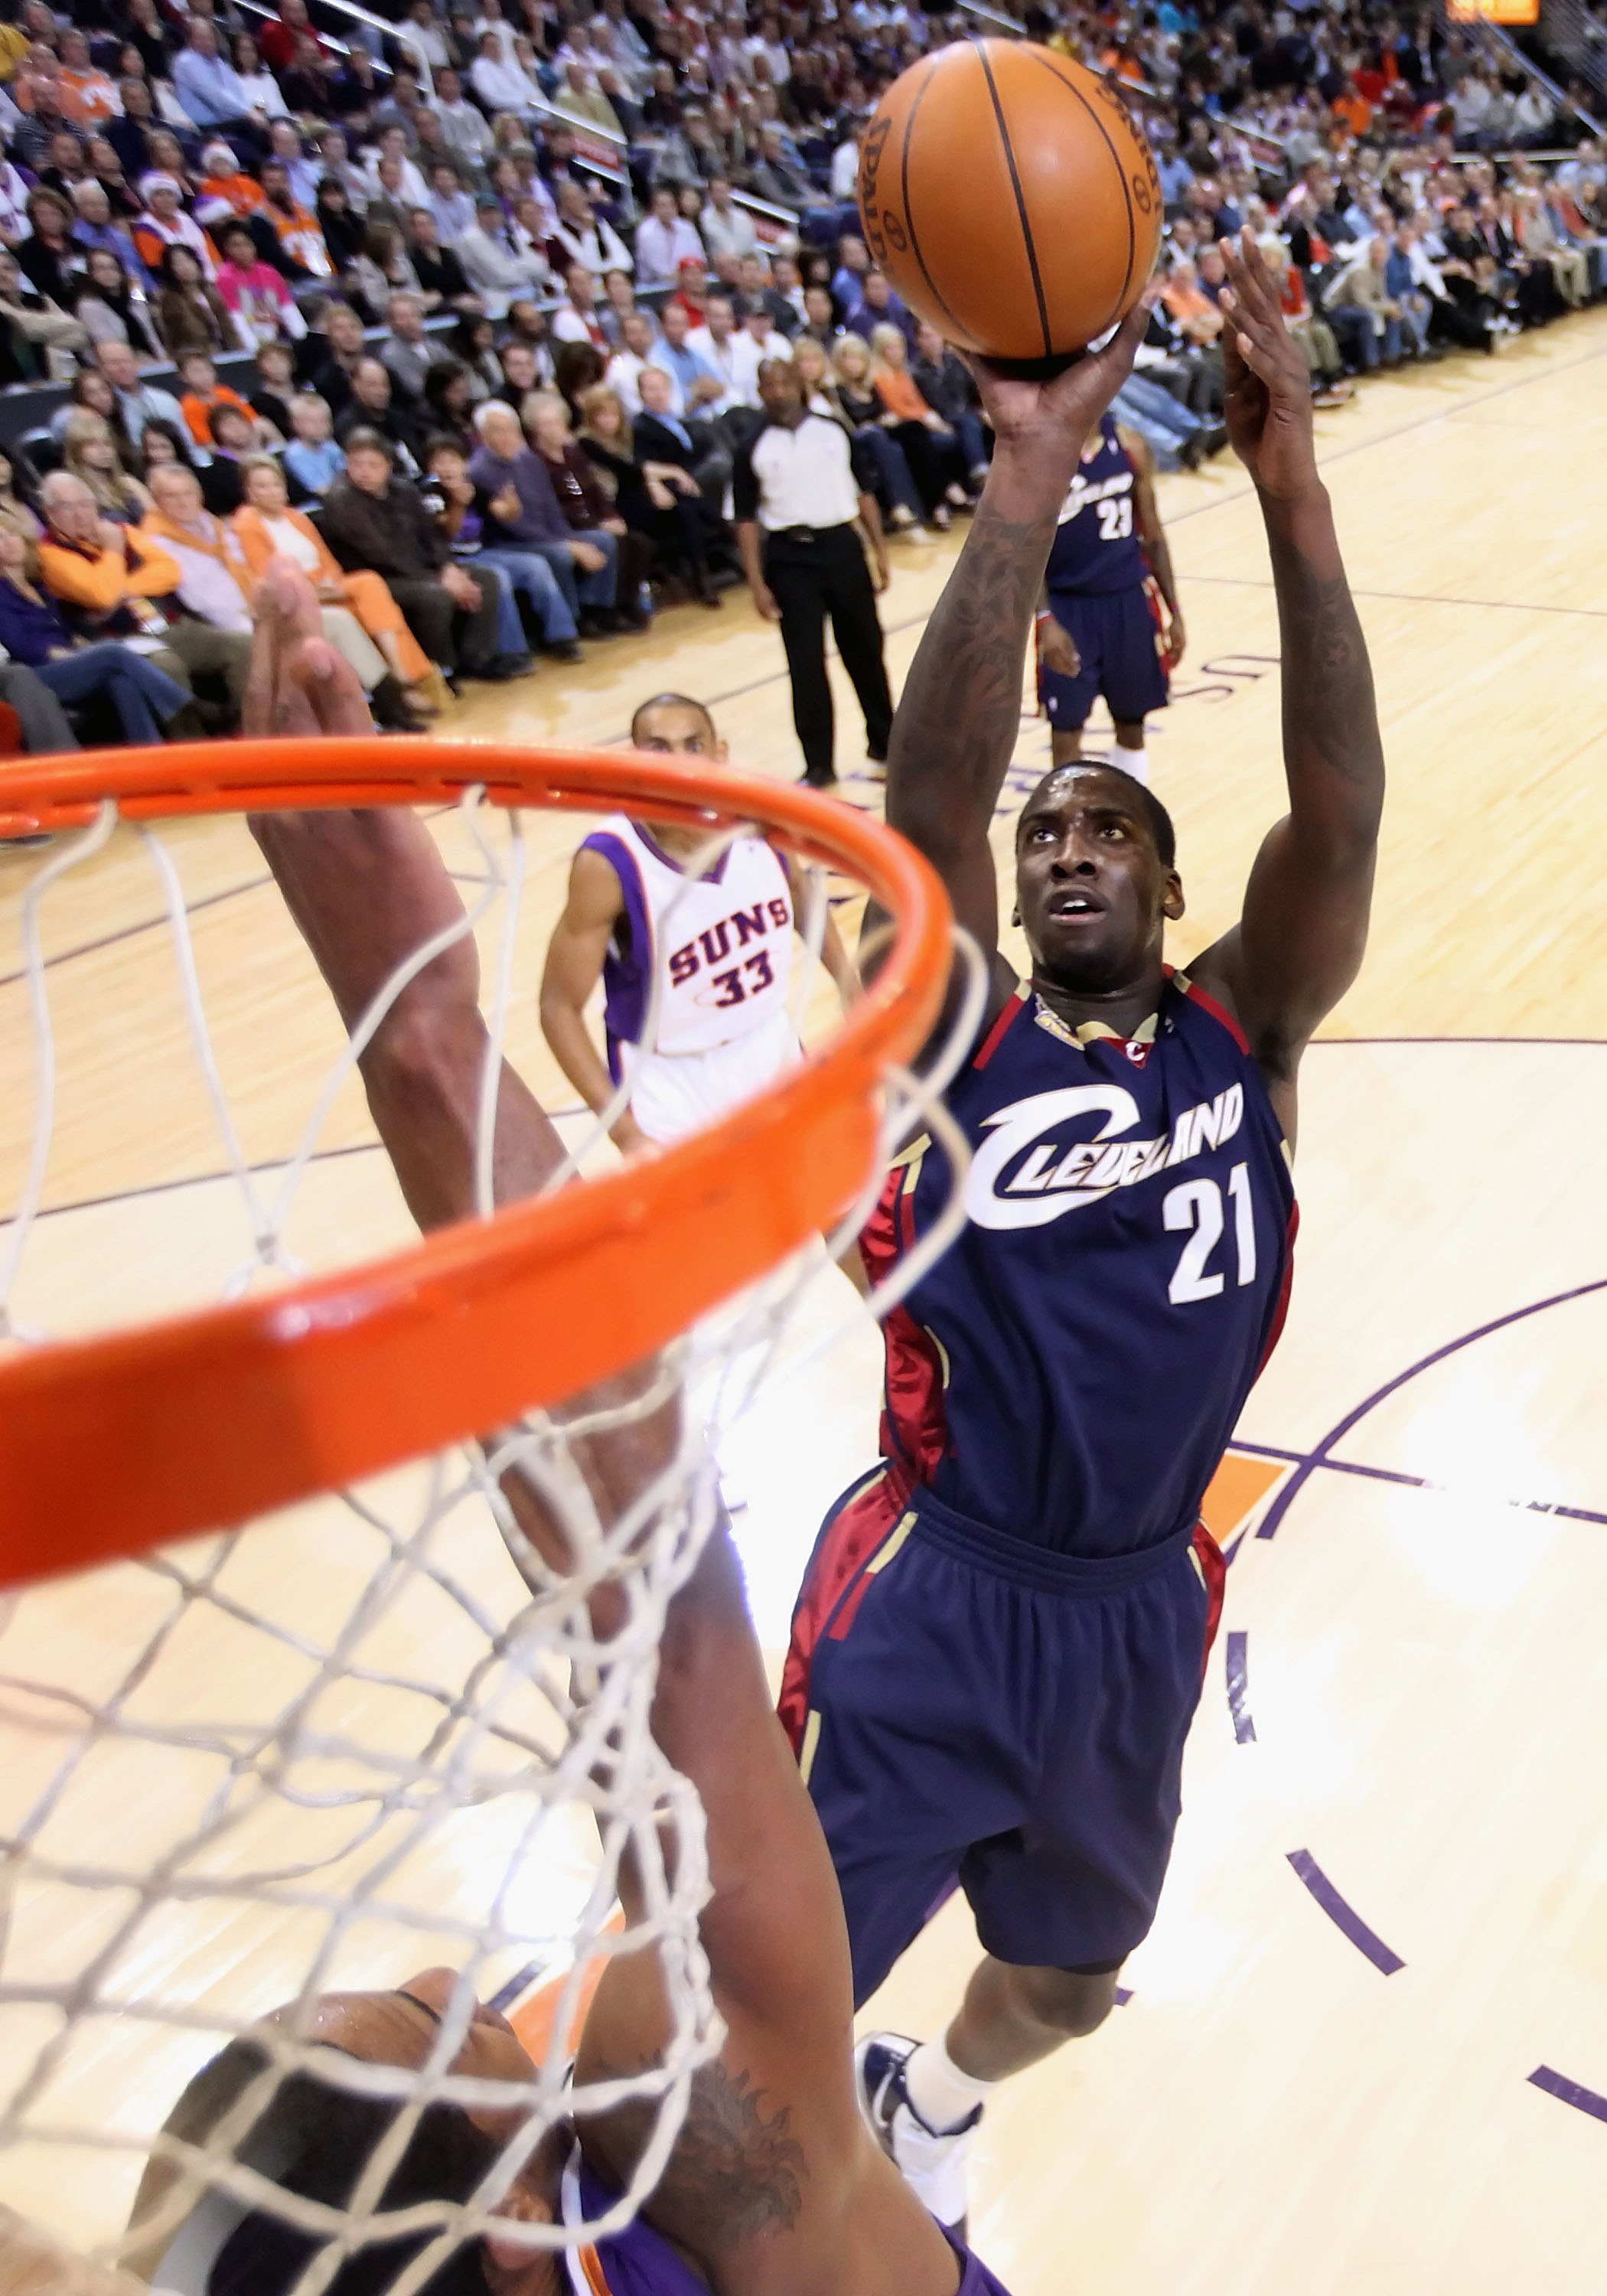 PHOENIX - DECEMBER 21:  J.J. Hickson #21 of the Cleveland Cavaliers puts up a shot over Channing Frye #8 of the Phoenix Suns during the NBA game at US Airways Center on December 21, 2009 in Phoenix, Arizona. The Cavaliers defeated the Suns 109-91.  NOTE T